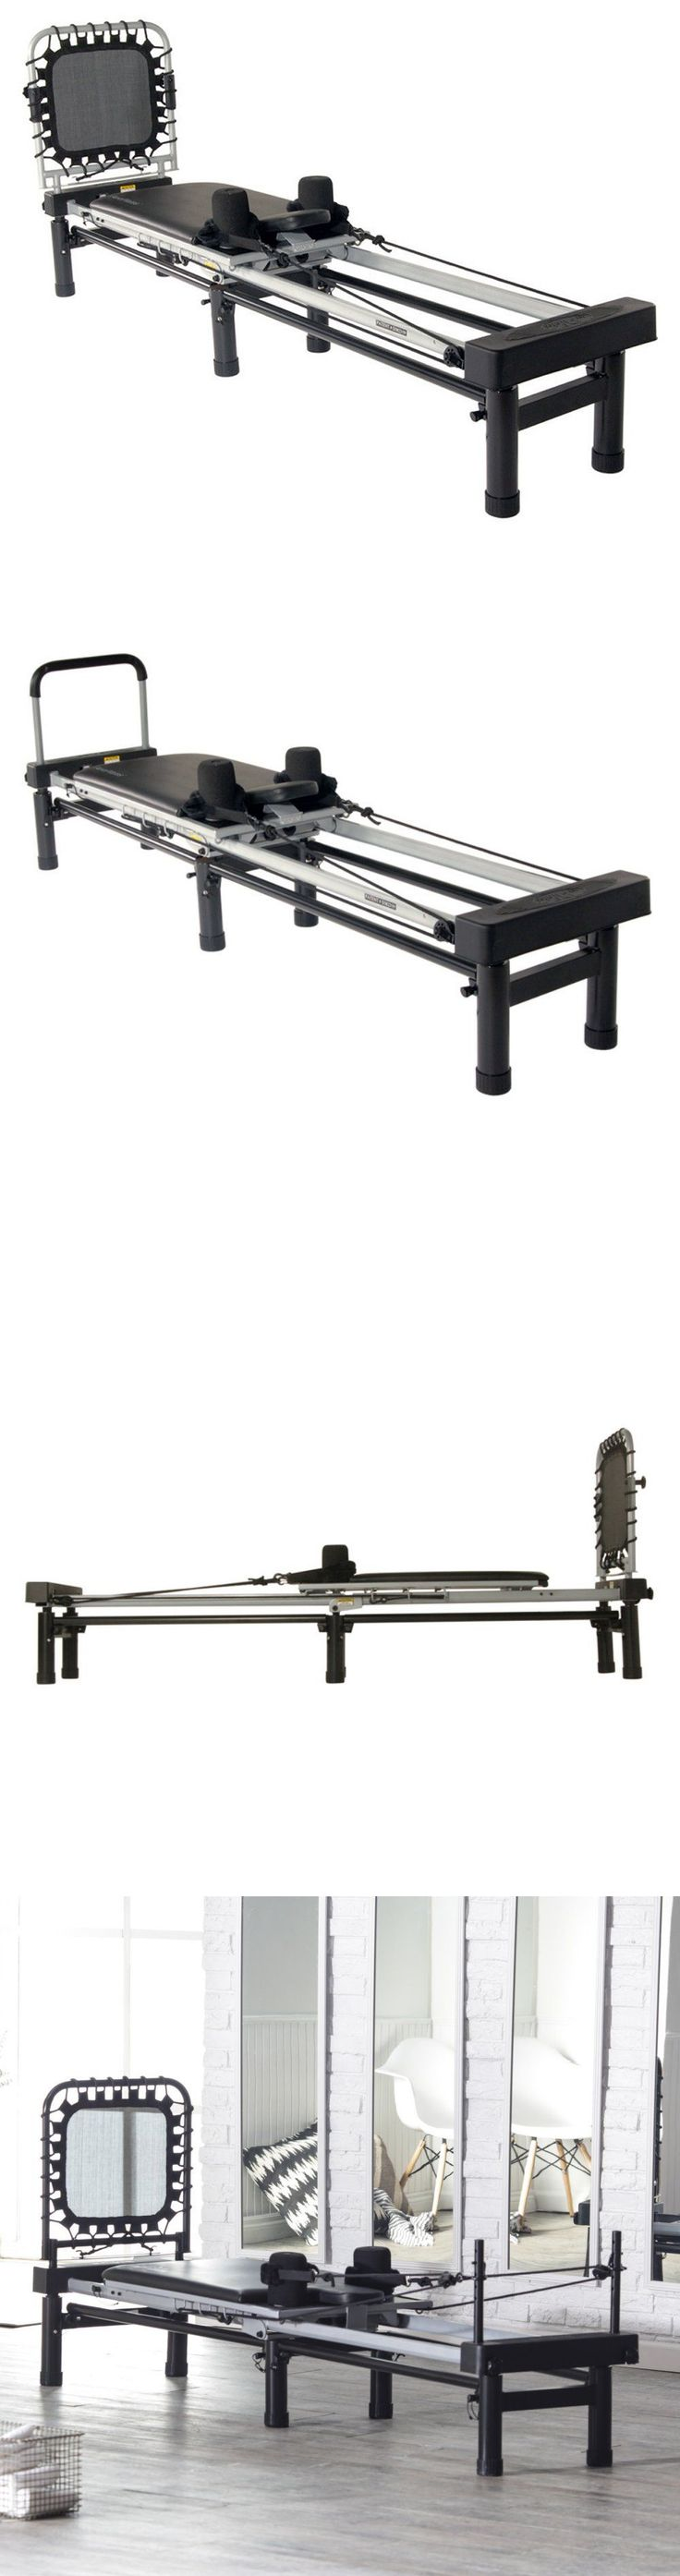 Pilates Tables 179807: Reformer Pilates Exercise With Cardio Rebounder Sturdy Steel Portable Stand BUY IT NOW ONLY: $523.97